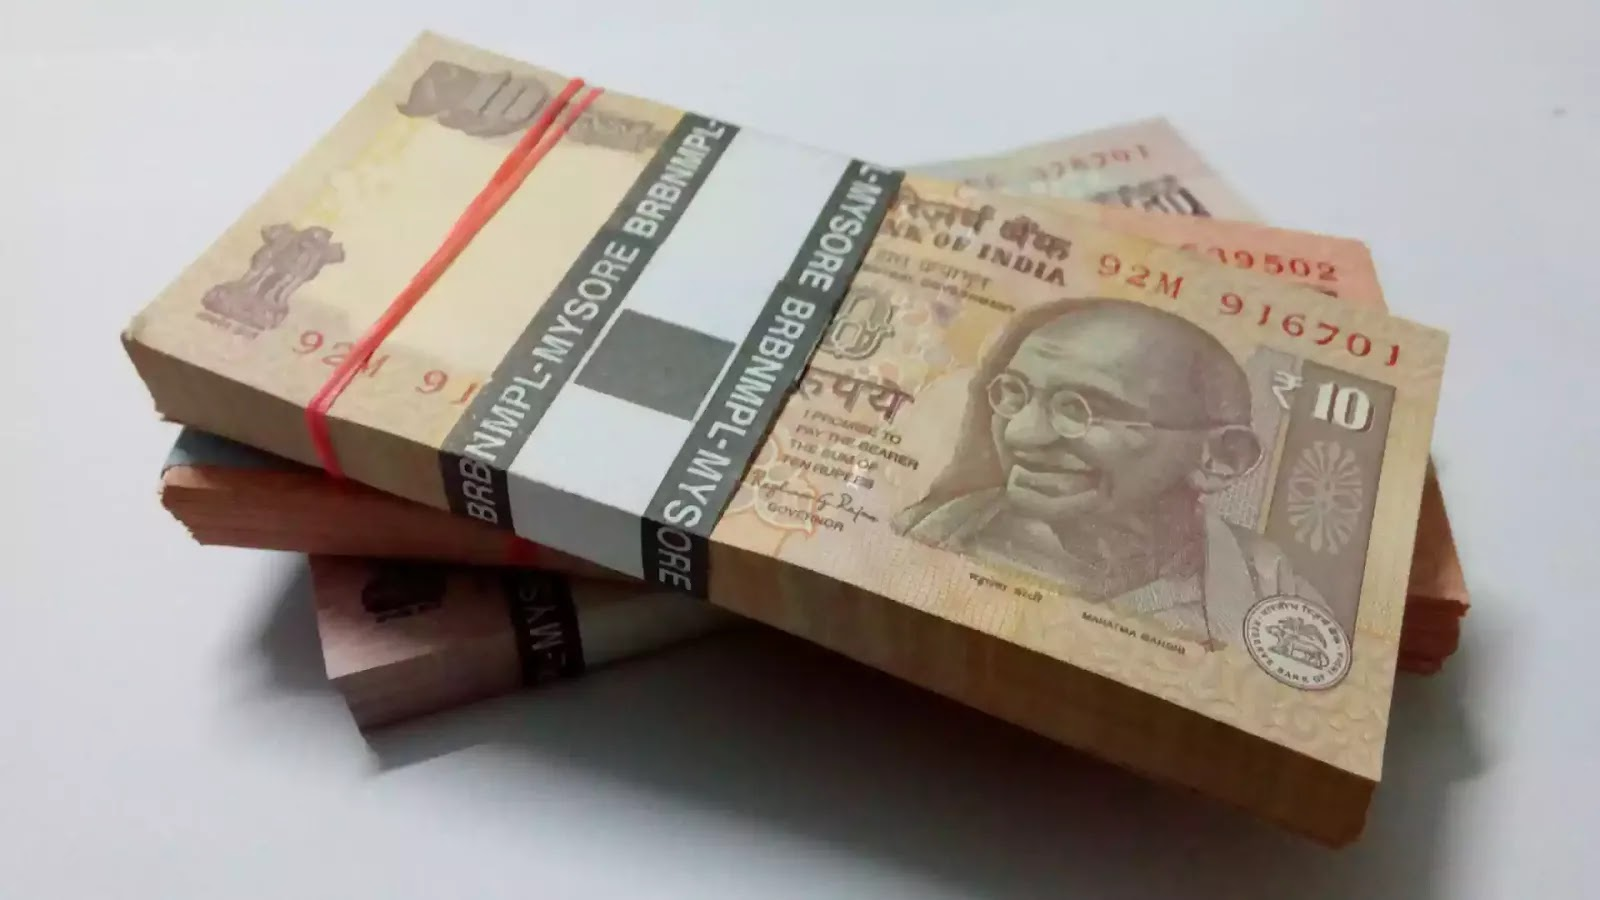 Indian currency, indian rupees, ₹10, 10 rupees note,